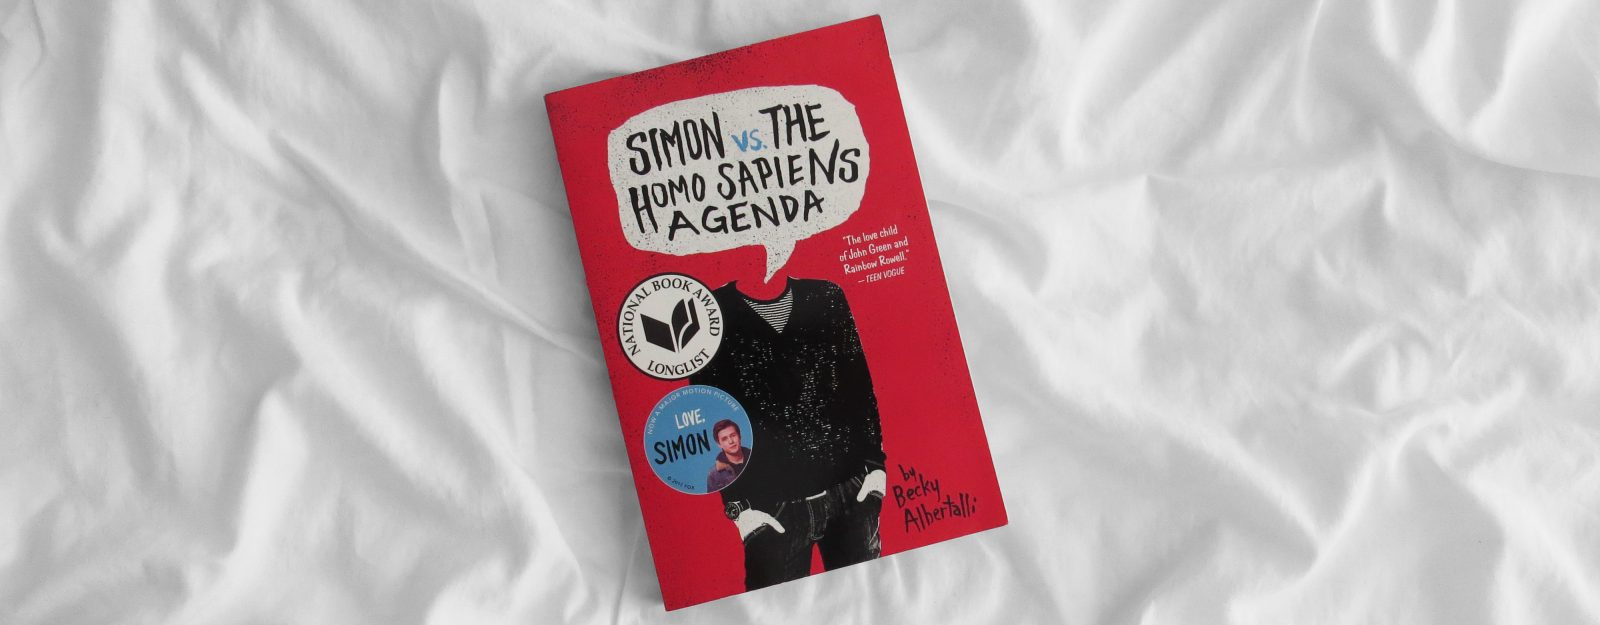 Review | Simon vs. the Homo Sapiens Agenda by Becky Albertalli